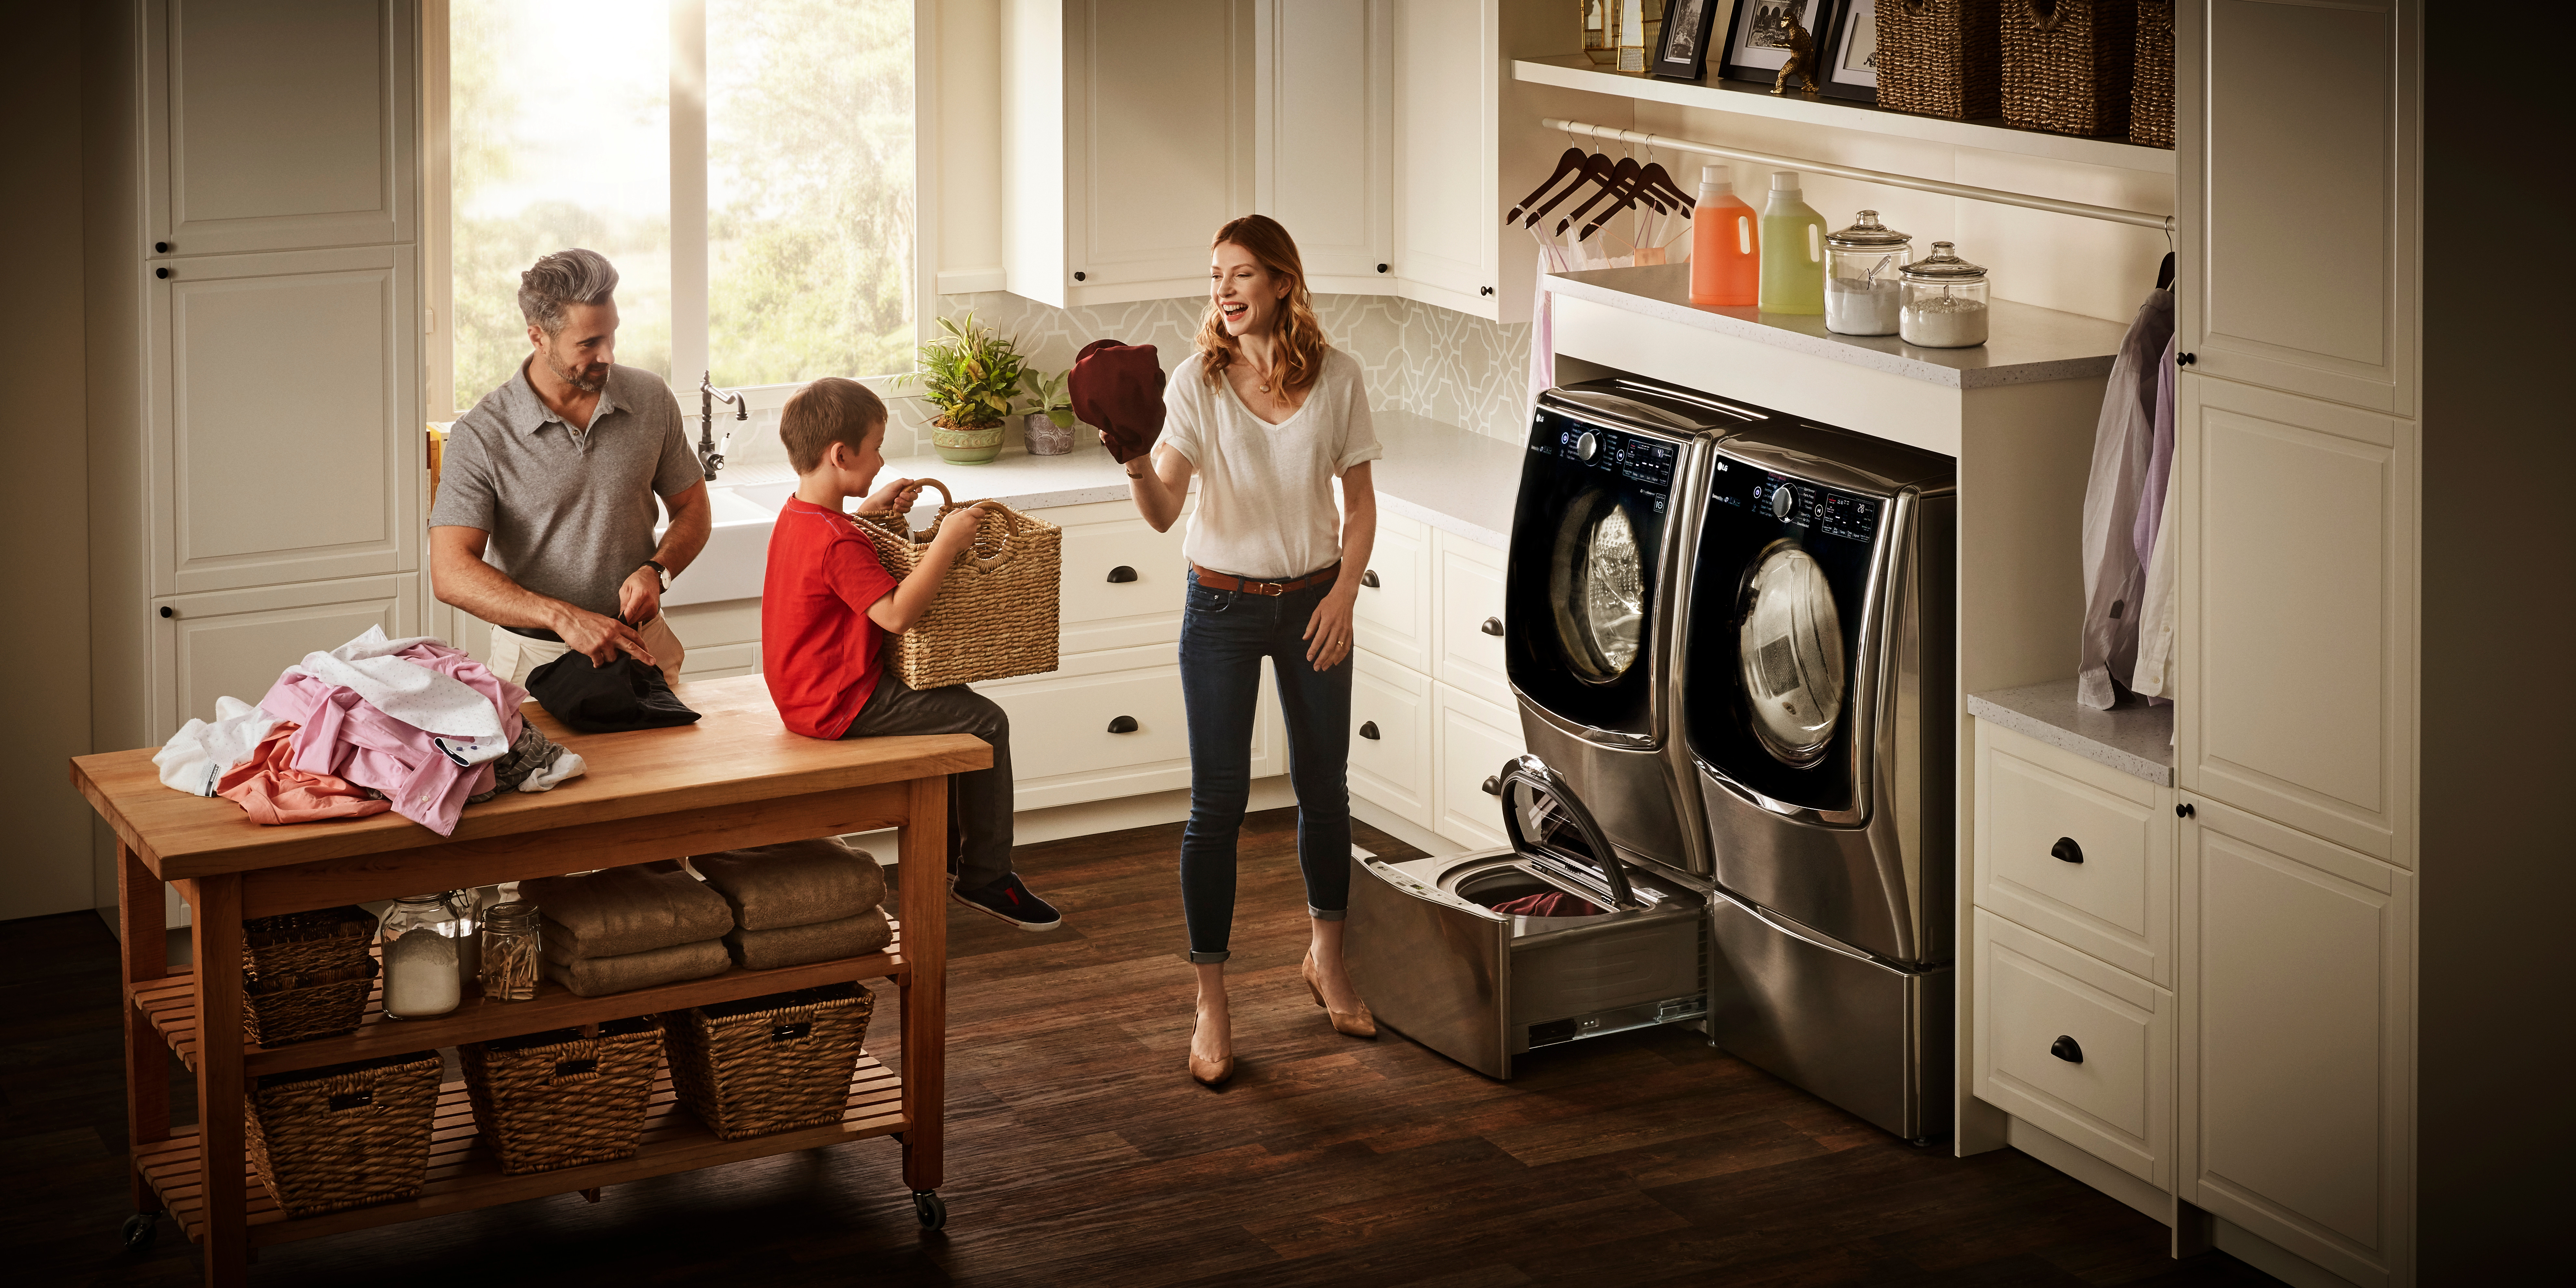 Save $500 on Laundry Solution when you Purchase a LG's TwinWash System from Best Buy